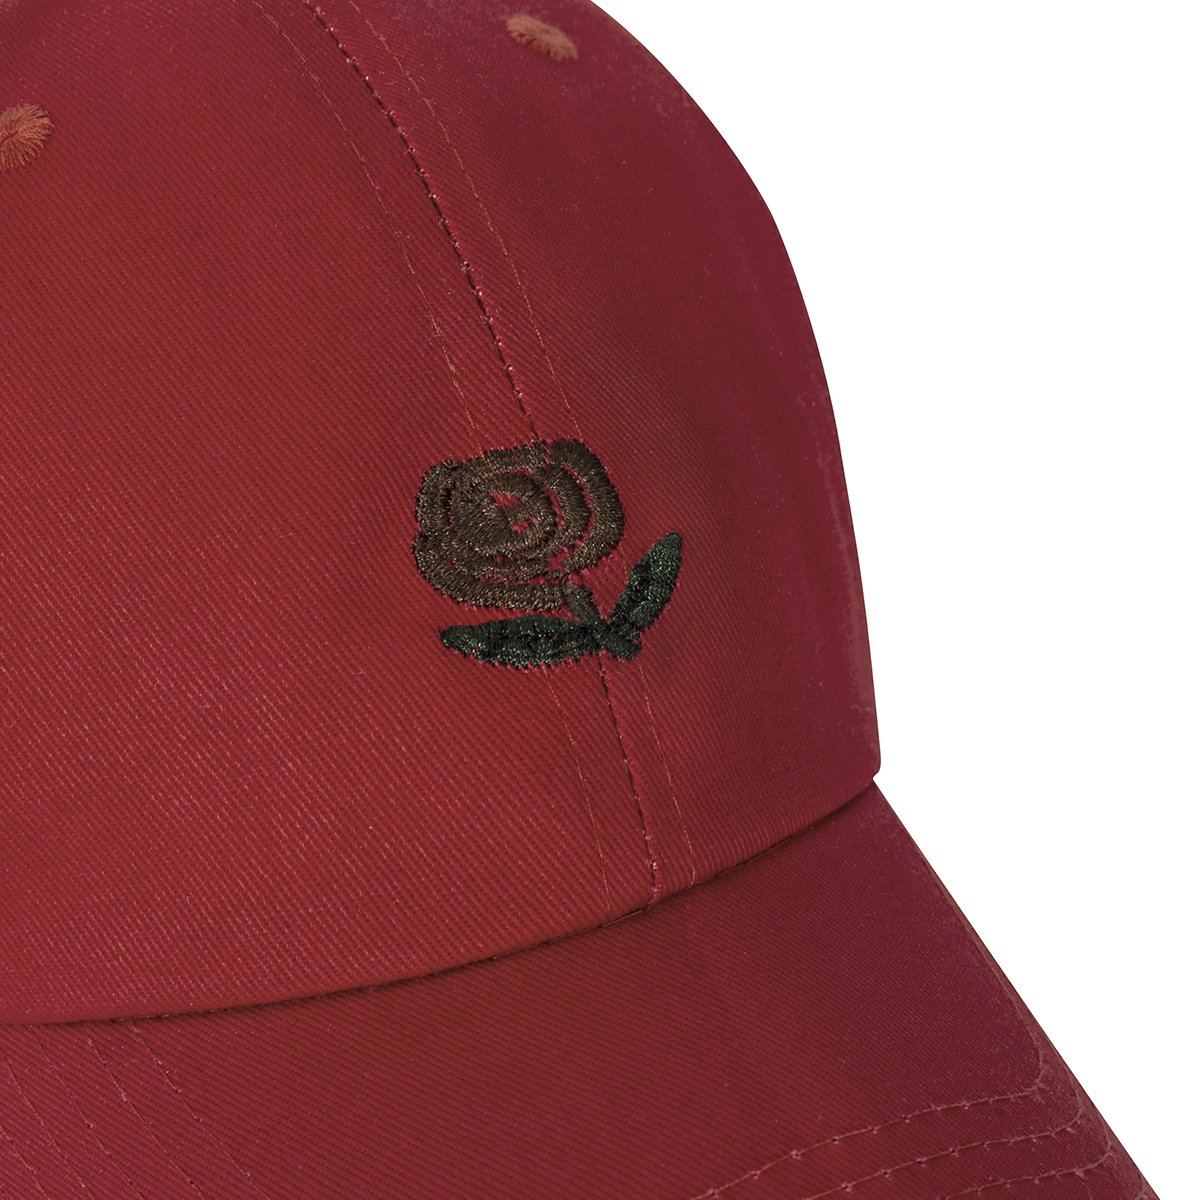 CHOSUR Embroidery Rose Flower Baseball Cap Cotton Adjustable Solid Color Fashion Dad Hat for Women Men Unisex(Red)